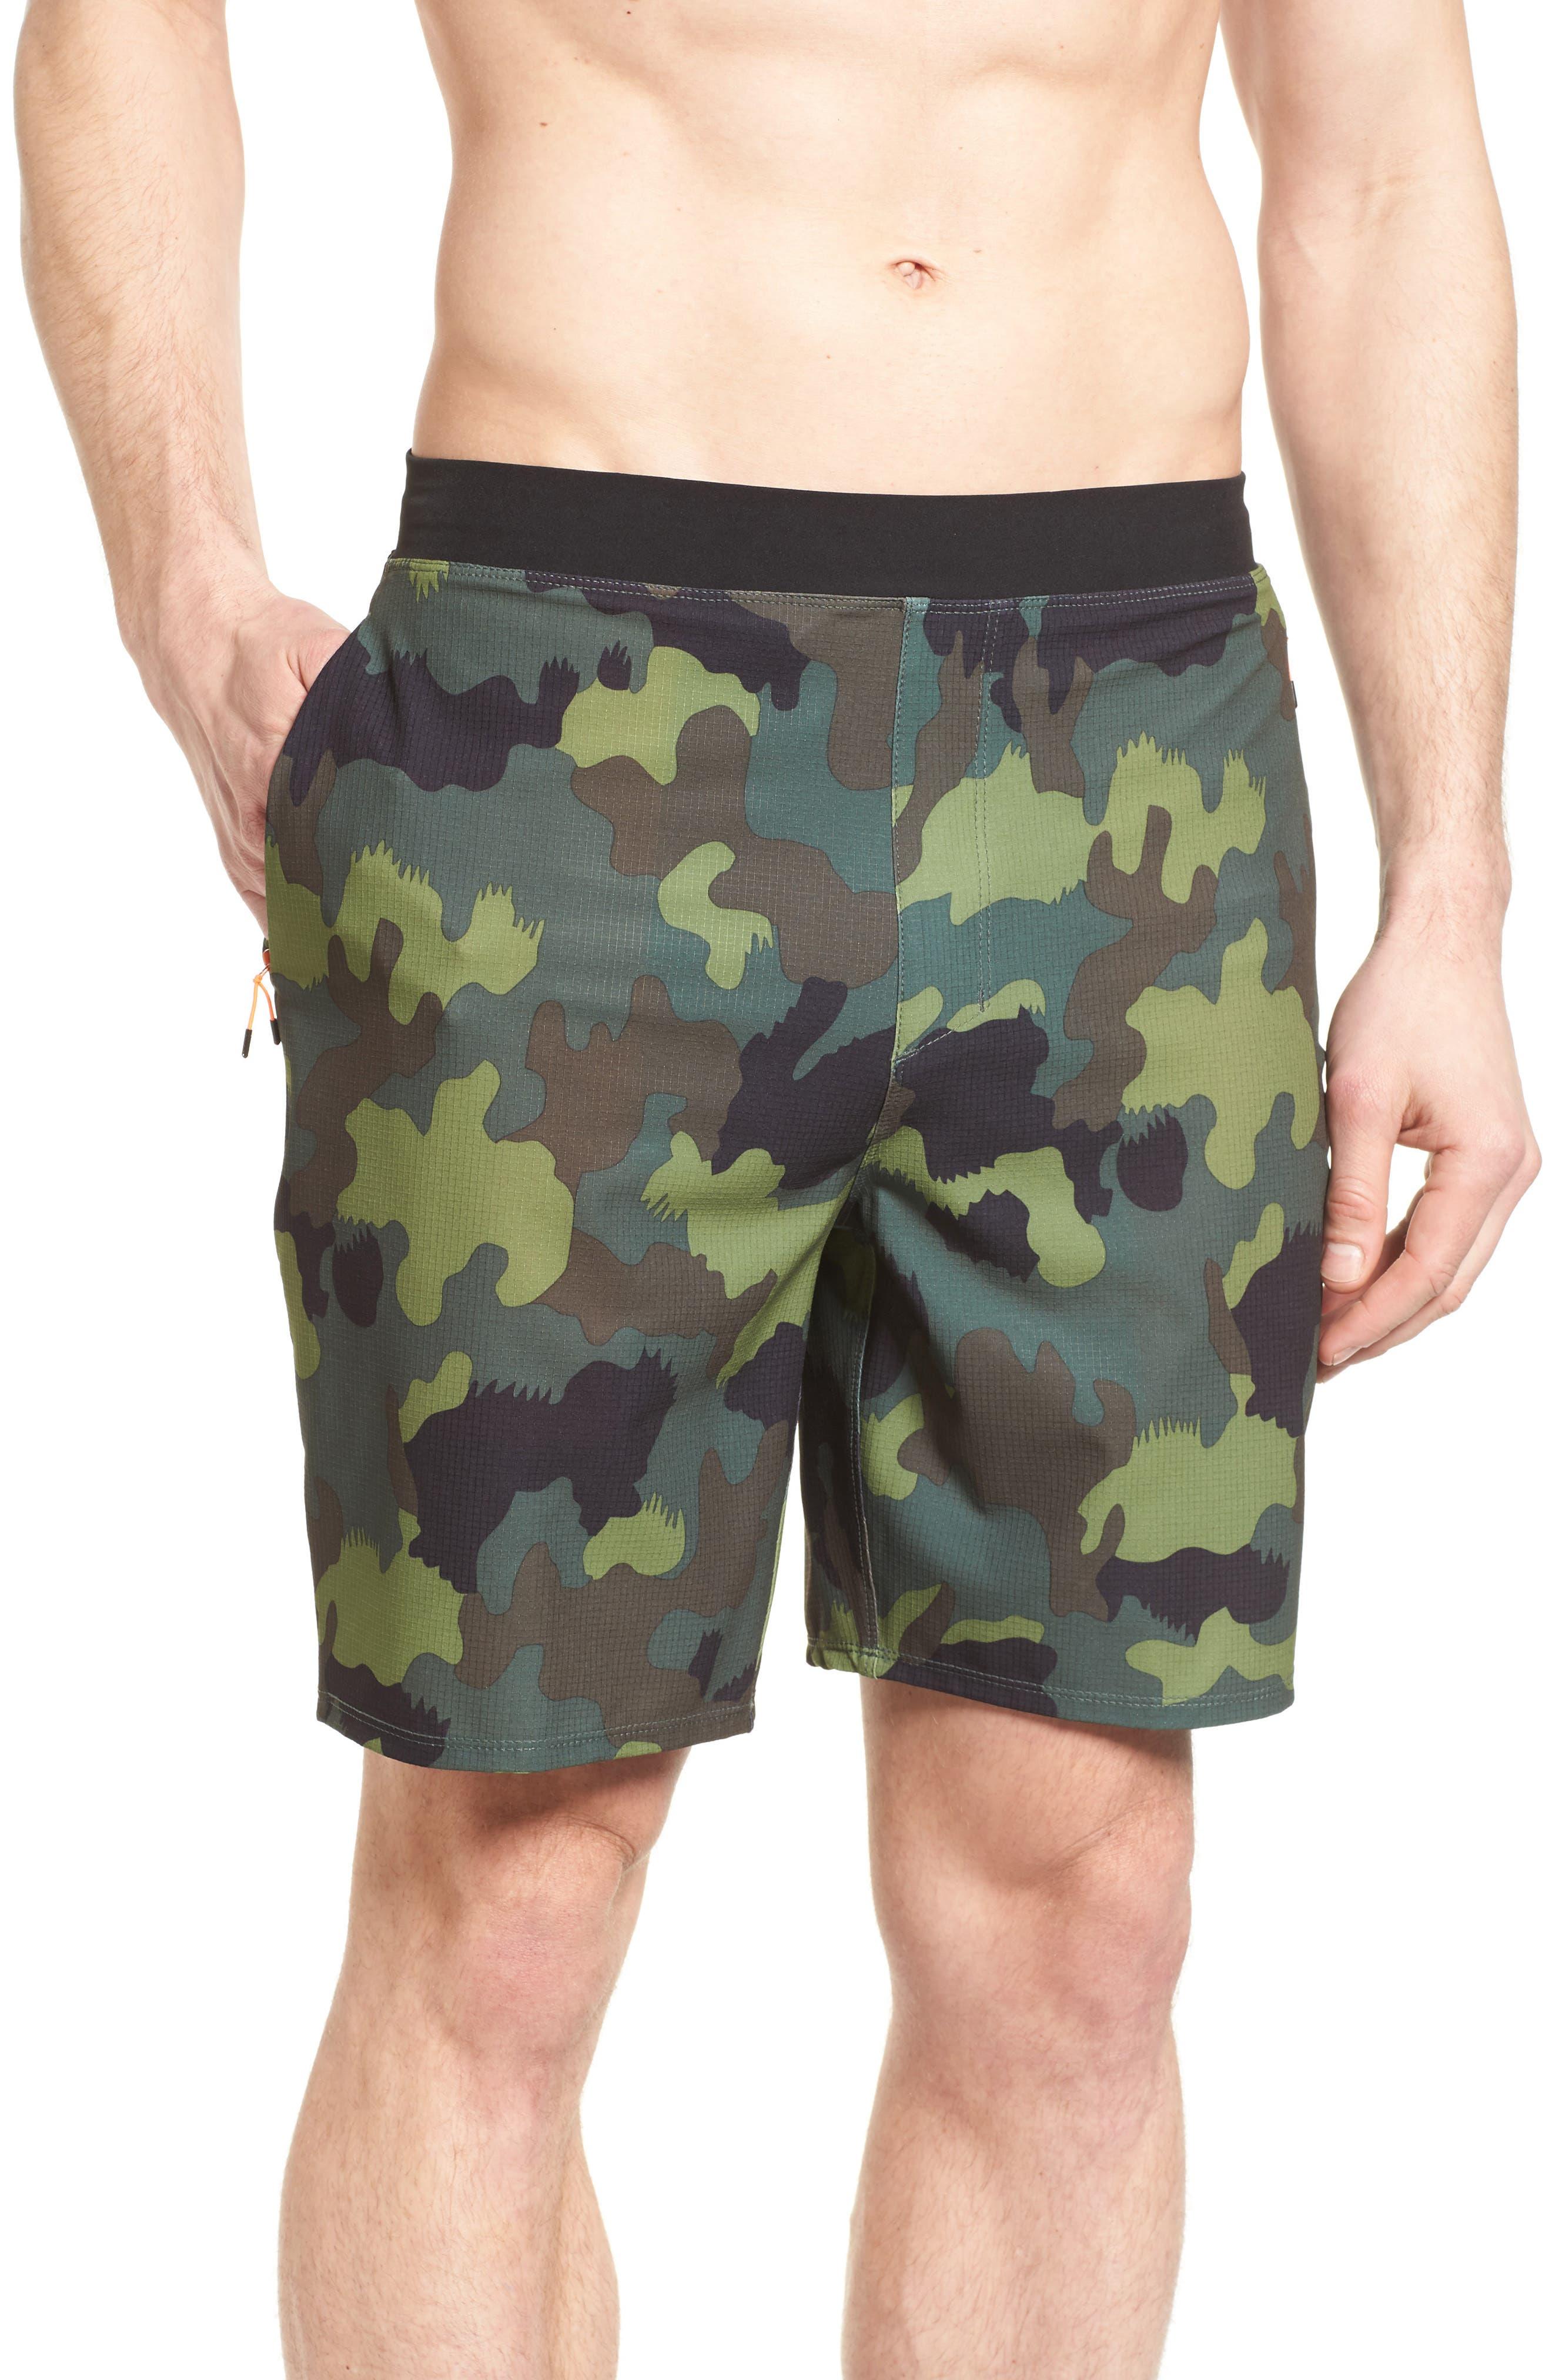 Alpha Trainer Plus Threat Training Shorts,                         Main,                         color, Camoflague